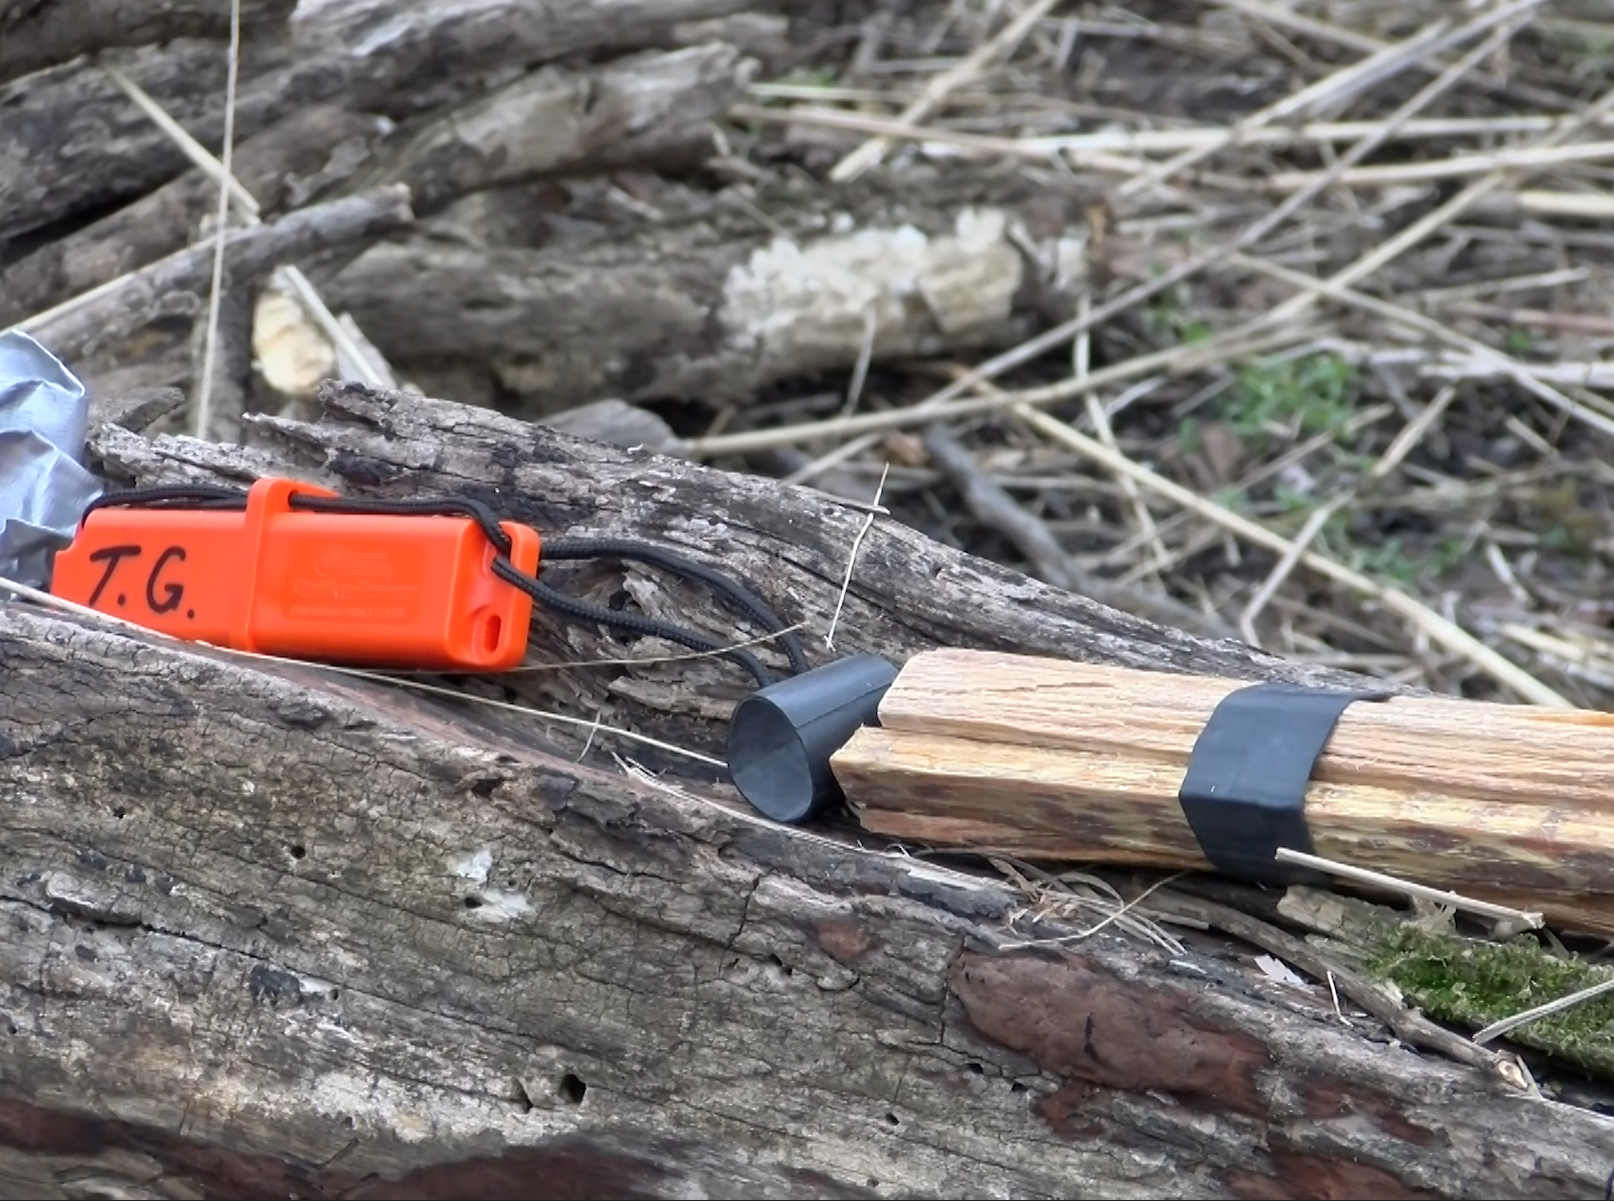 A number of simple fire starting items are displayed on a log during a woodland survival class.